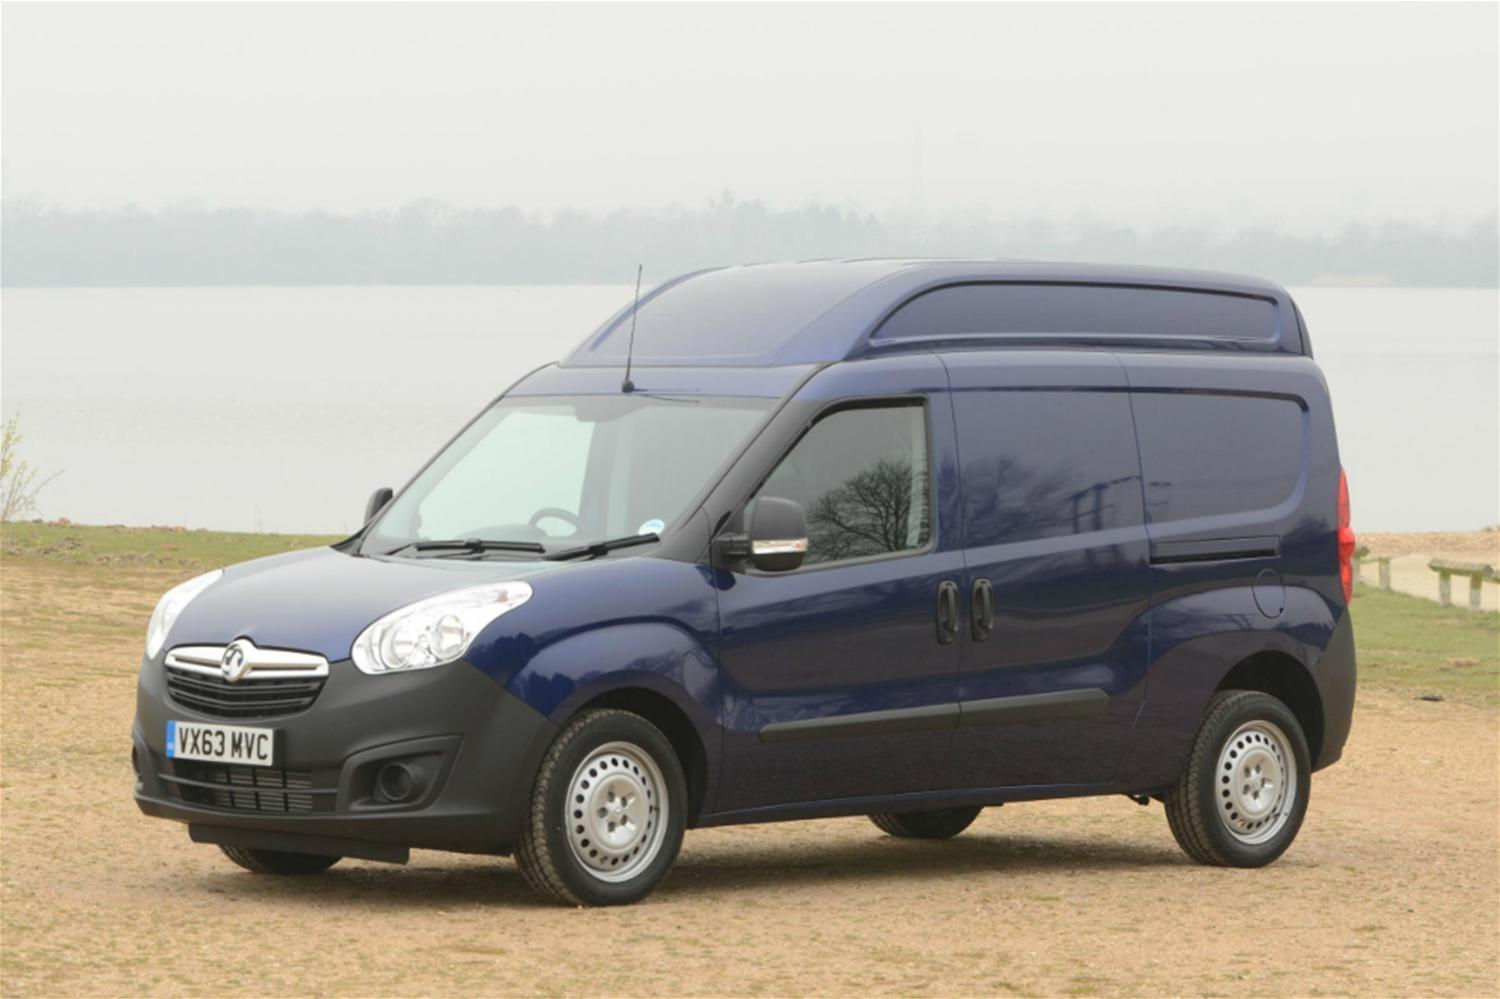 New and bigger bodystyle added for Vauxhall Combo